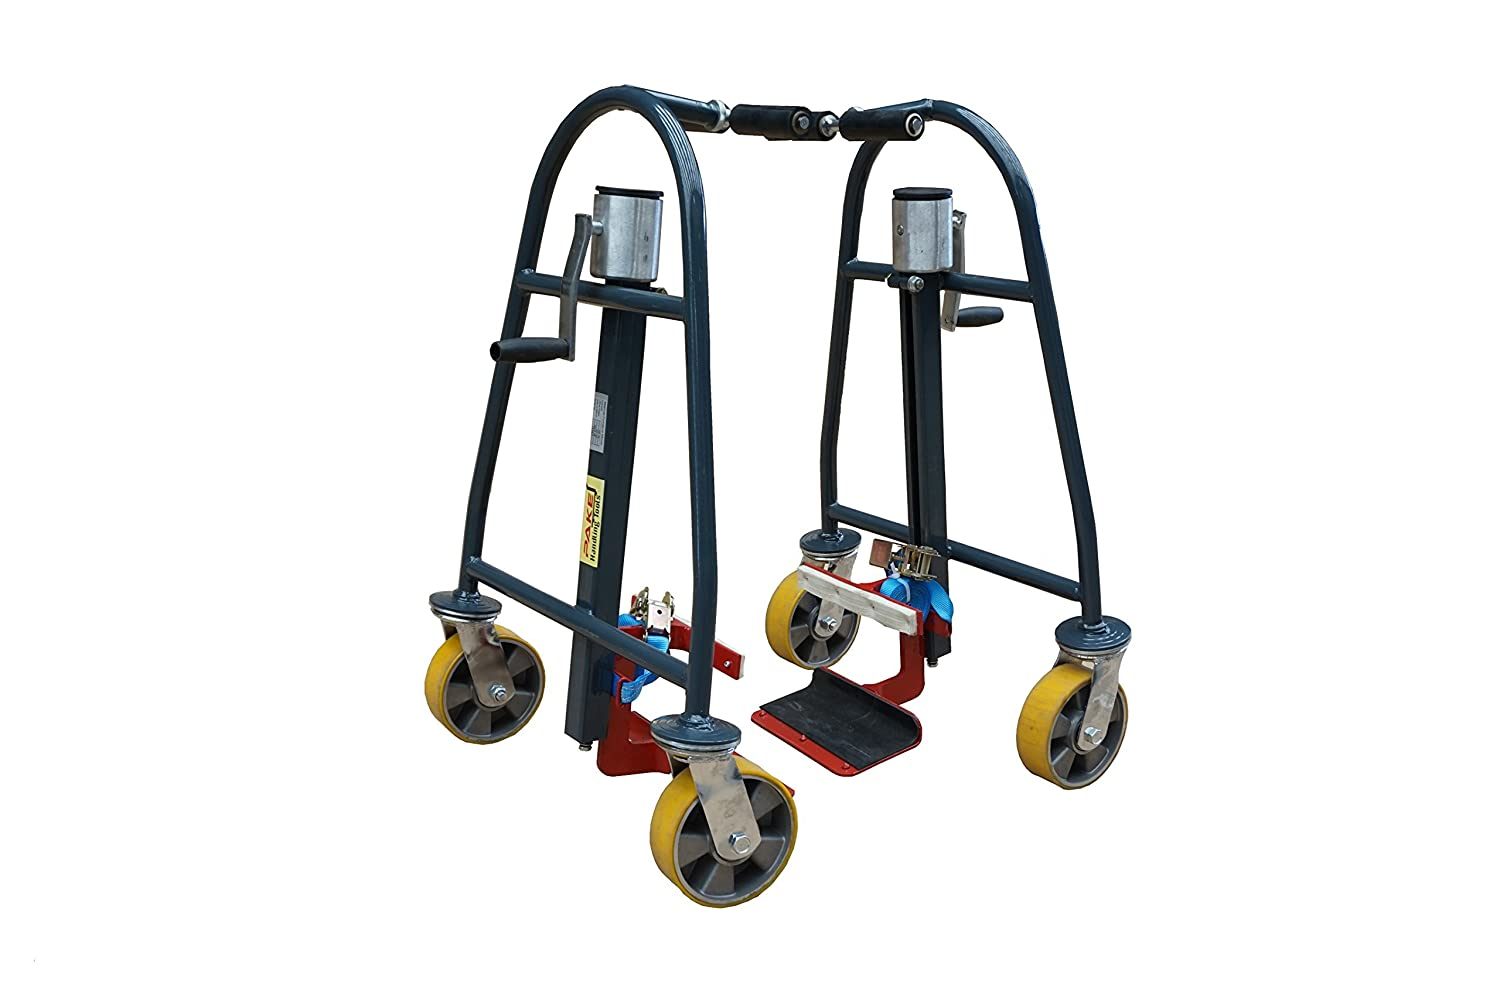 Pake Handling Tools - Manual Furniture Mover (Set of 2)- Safe and Easy Lifting -1320 lbs Capacity